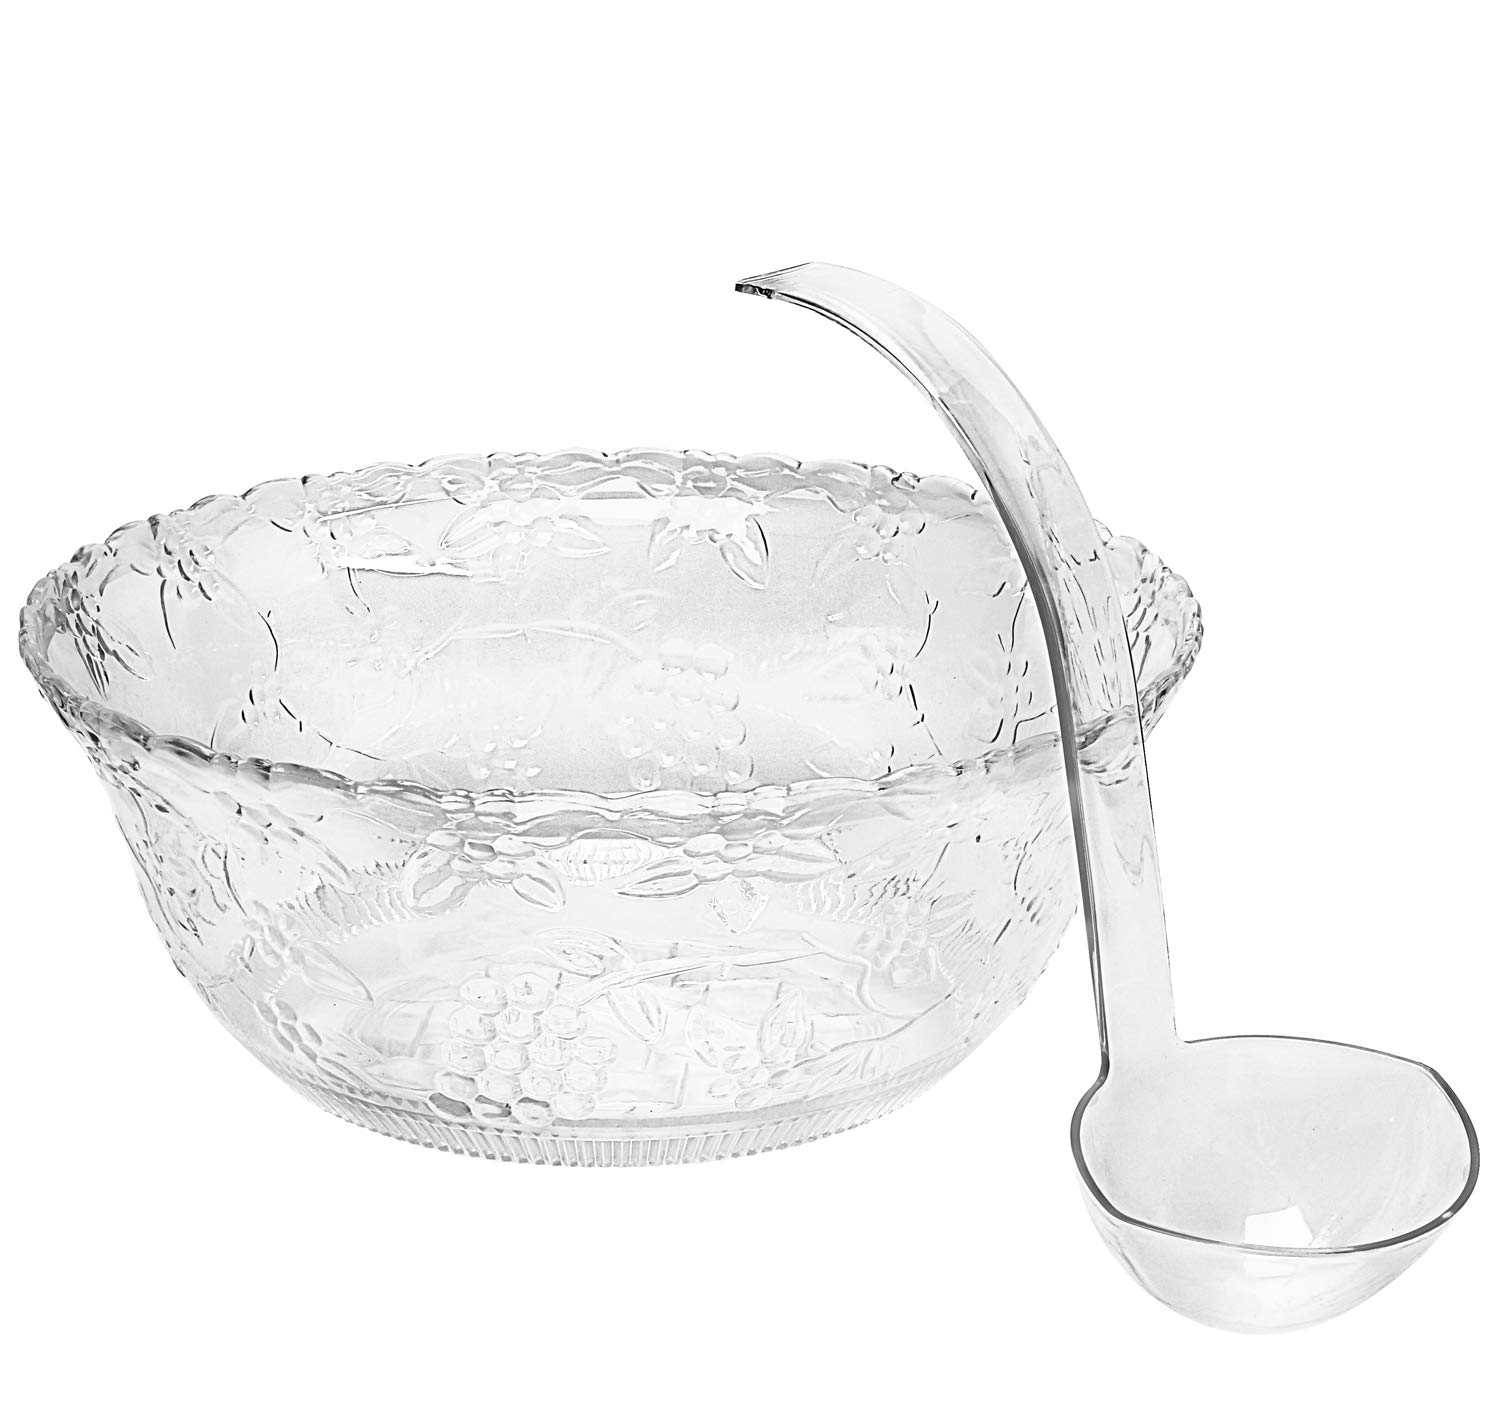 Heavyweight Clear Plastic 2 Gallon Punch Bowl With 5 OZ Plastic Serving Ladle, Embroidered Design 8 Quart Serving Bowl. by Pro Dispose